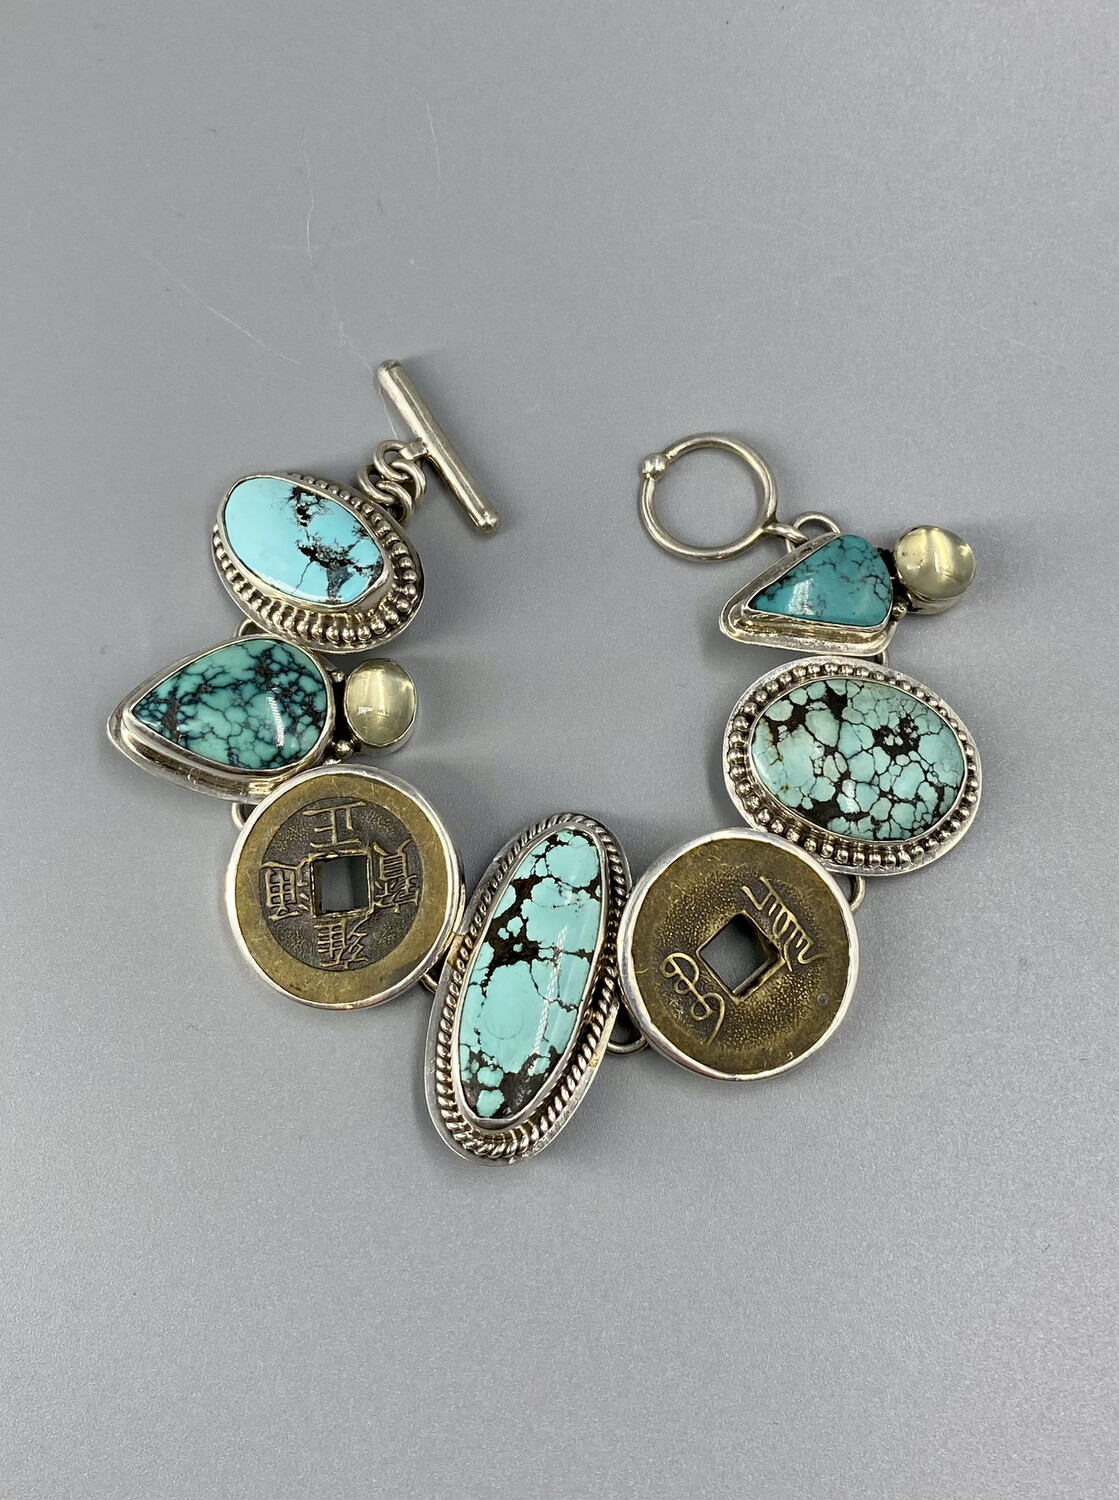 Turquoise, Chinese Coin, Green Moonstone Bracelet